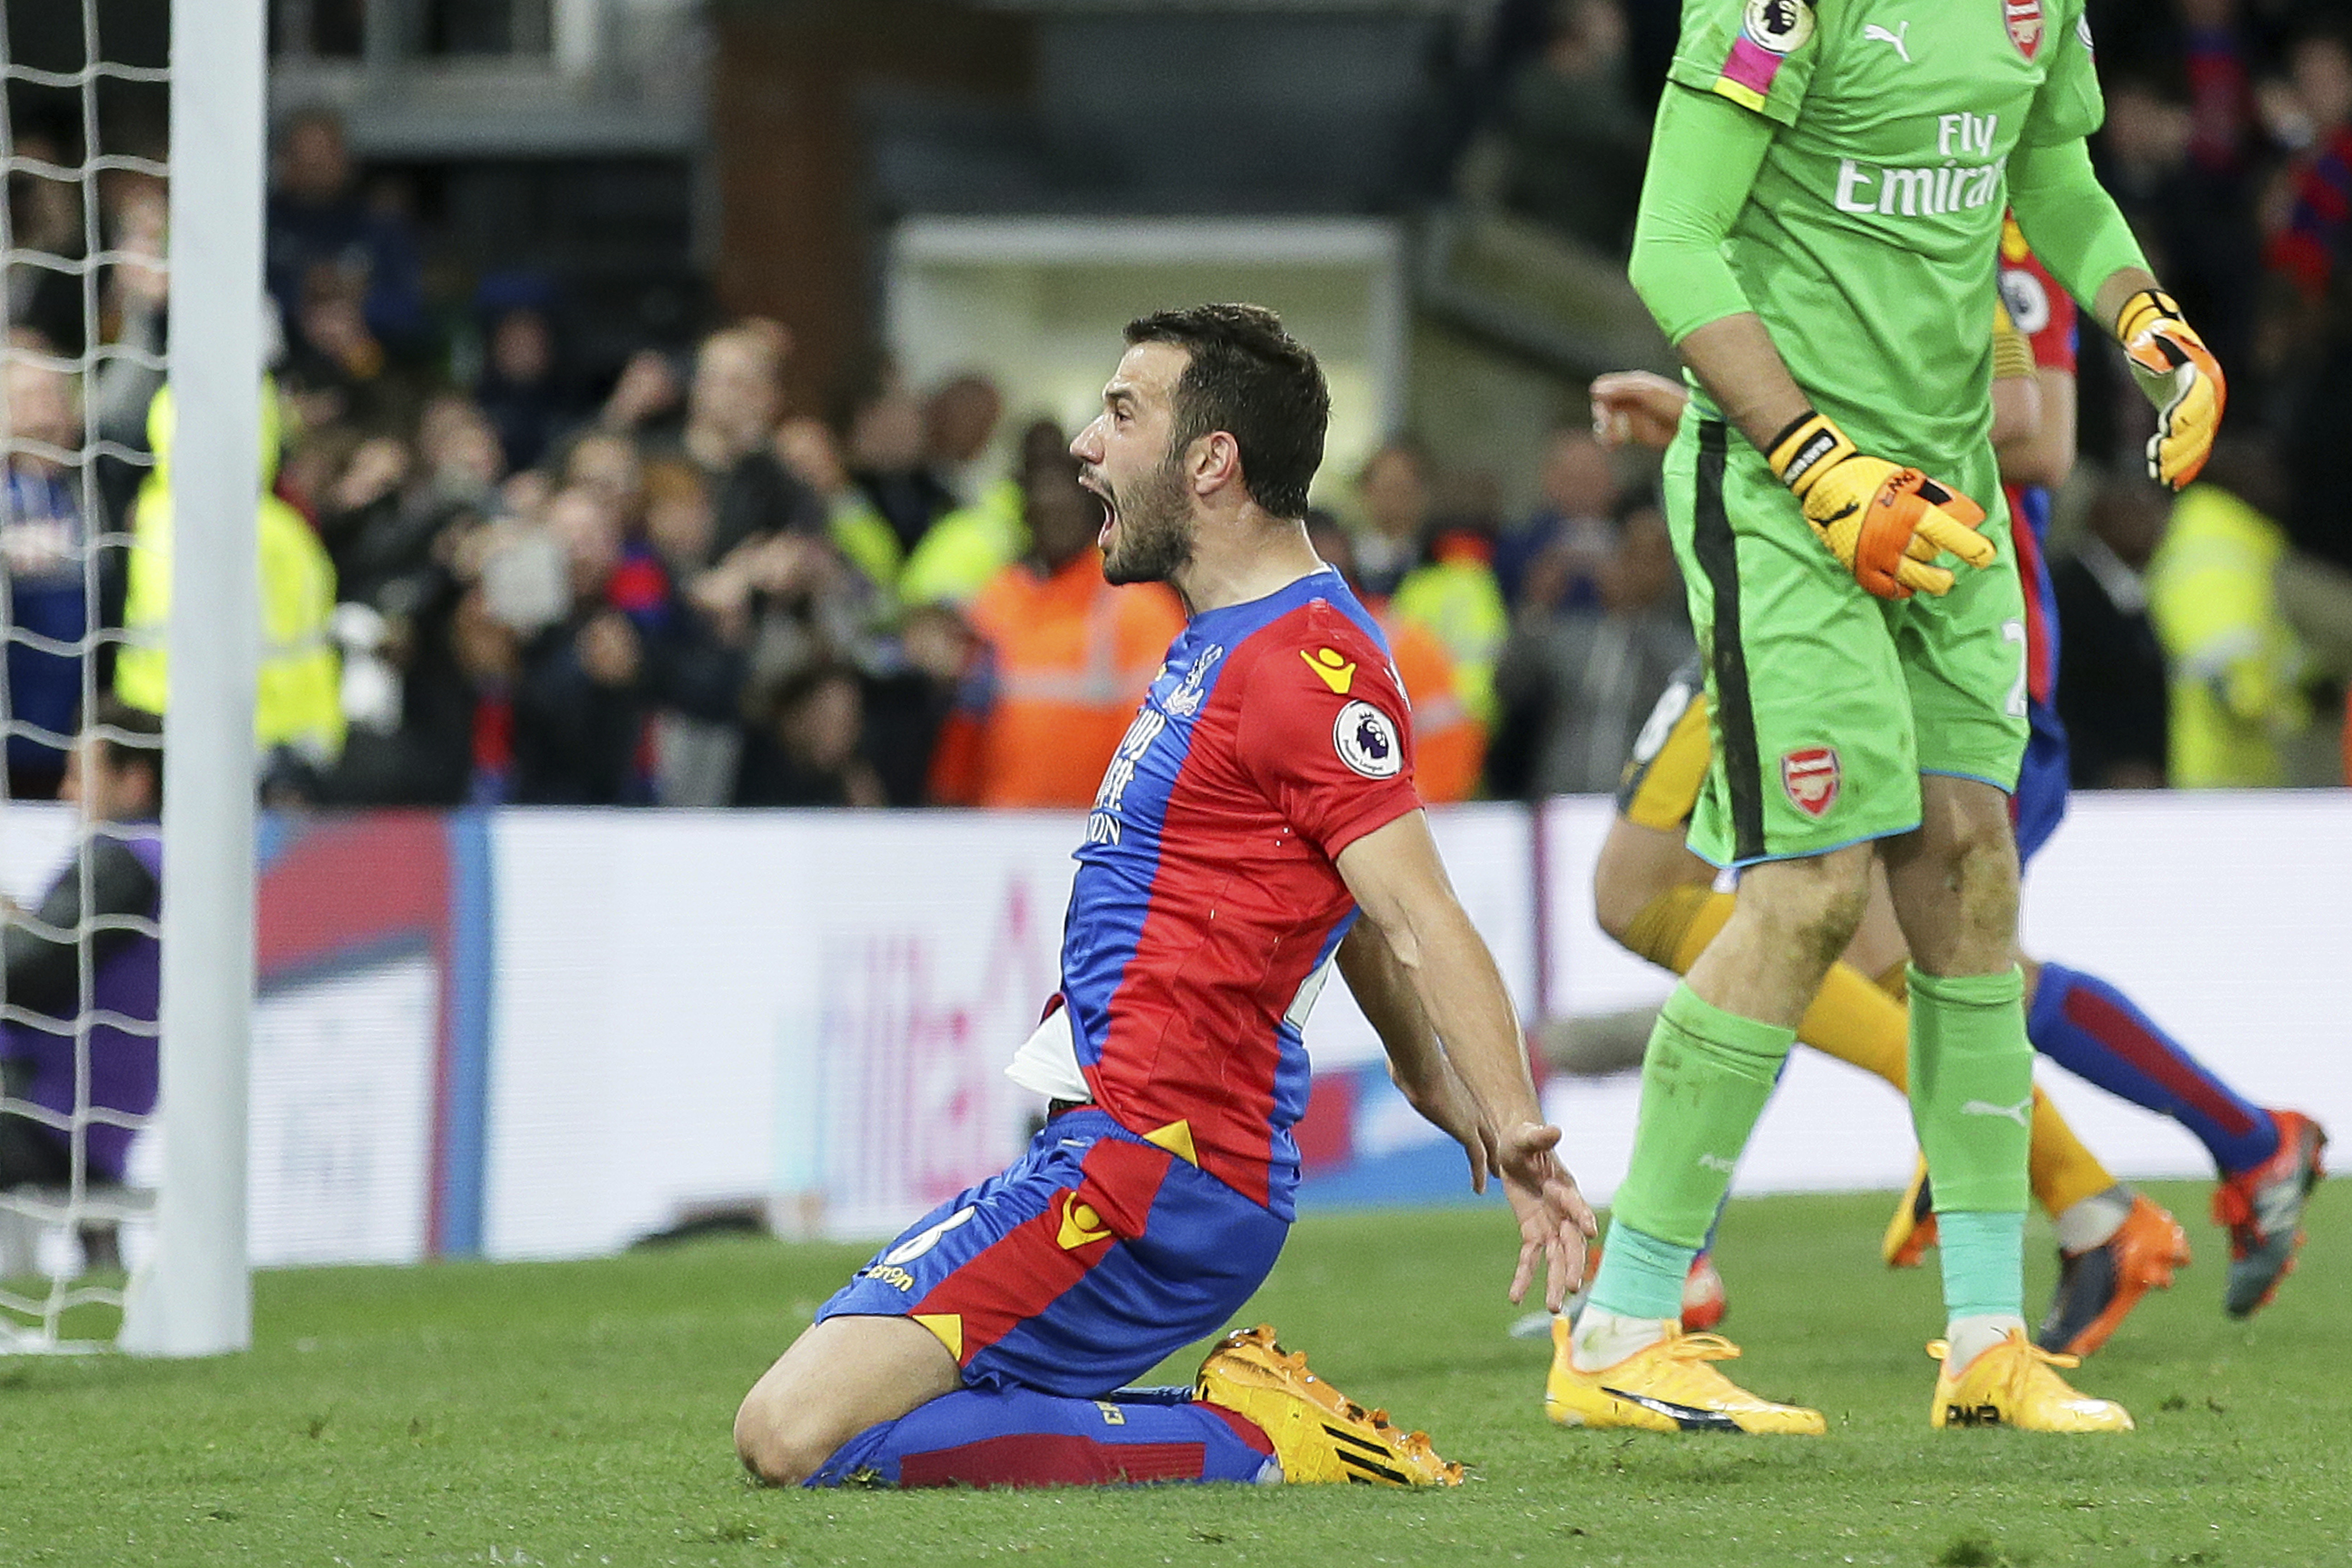 Crystal Palace's Luka Milivojevic celebrates after scoring a penalty during the English Premier League match against Arsenal at Selhurst Park in London, Monday April 10. (AP Photo/Tim Ireland)